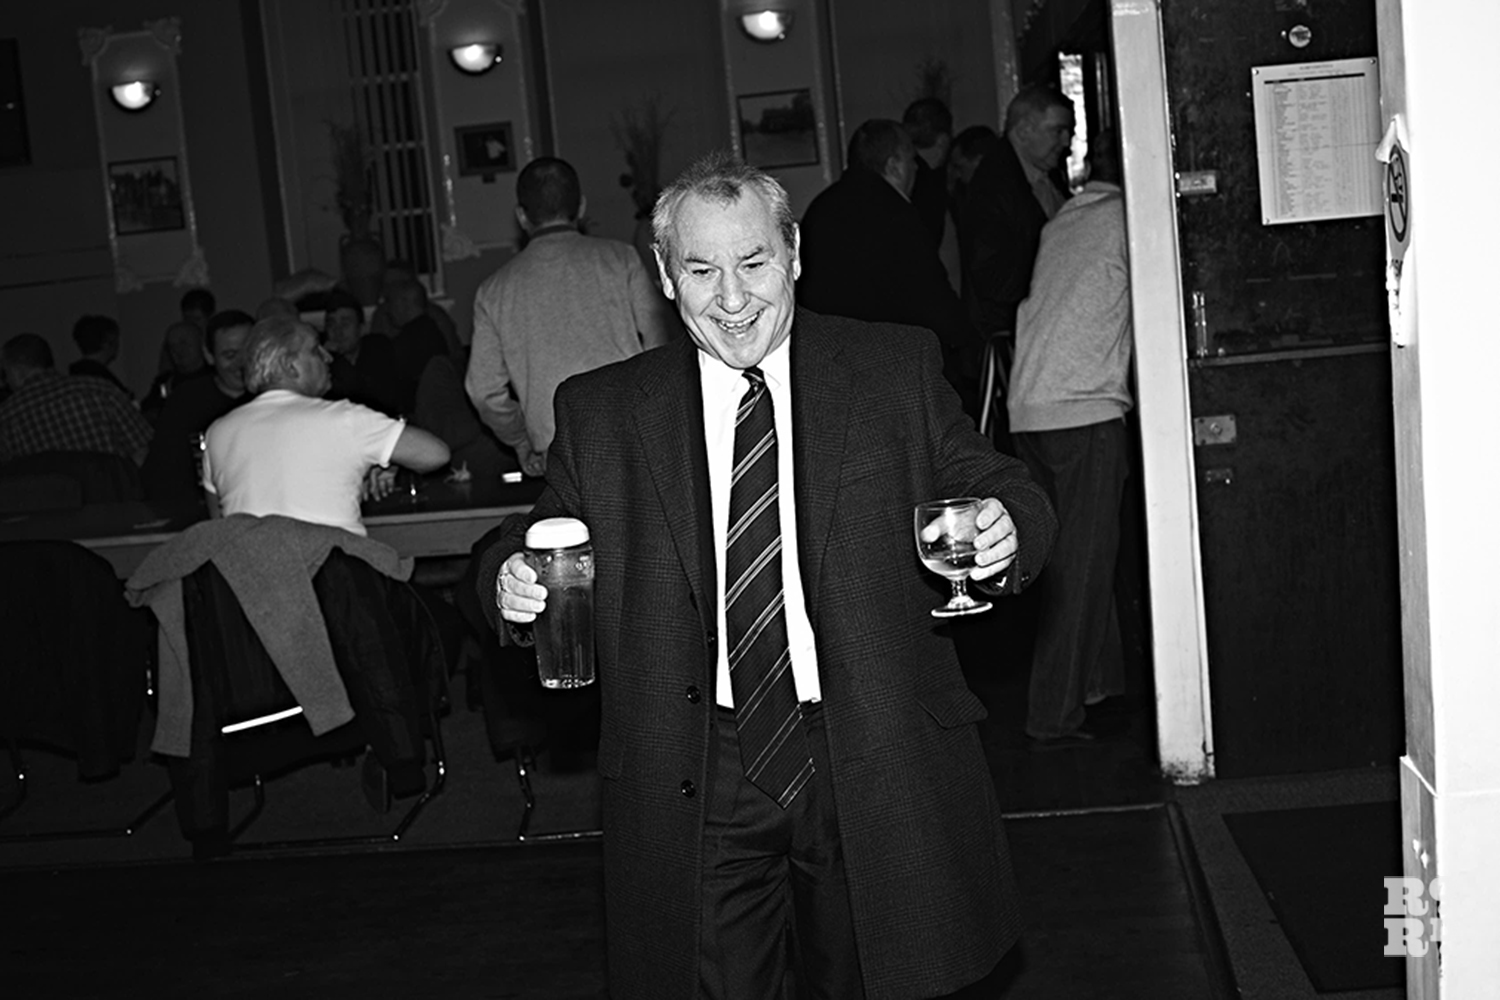 Man in suit carrying two drinks in the Globe Town Social club, East London, black and white photography